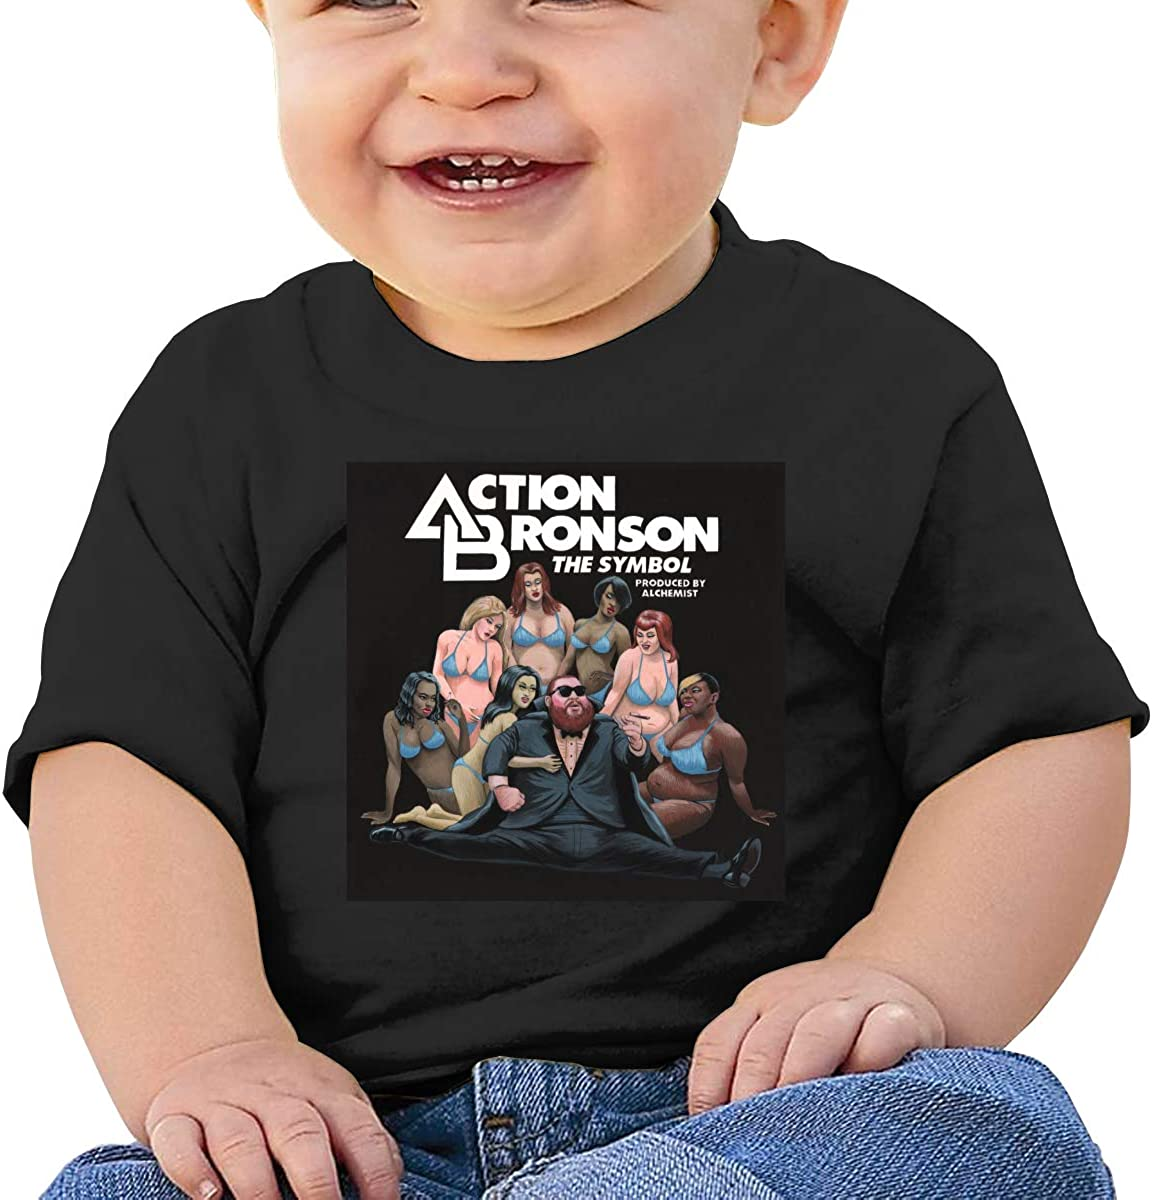 Side One Track One Shirt Toddler Cotton Tee Baby Action Bronson